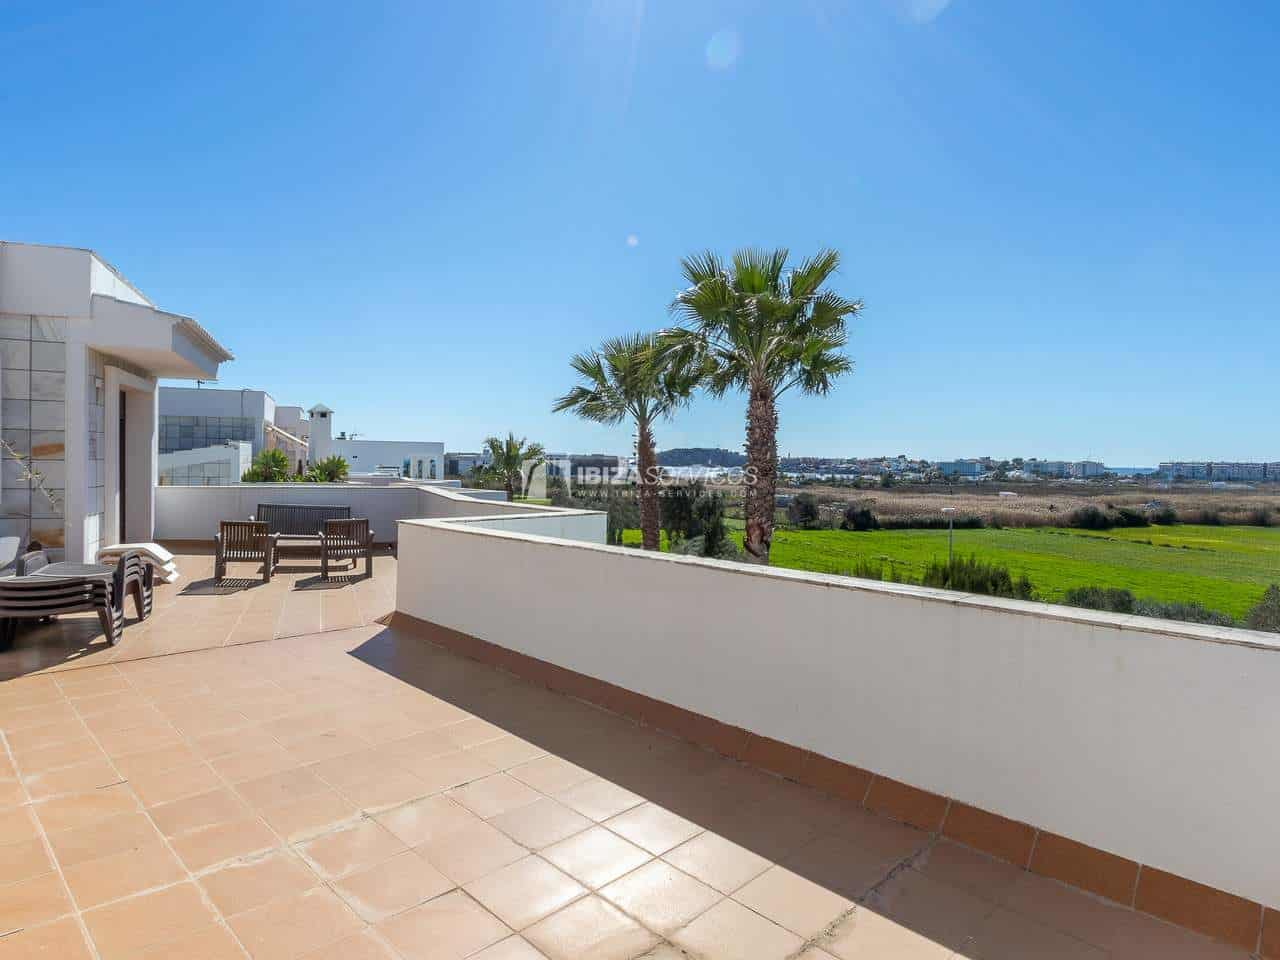 Spacious villa situated in a top location with great views